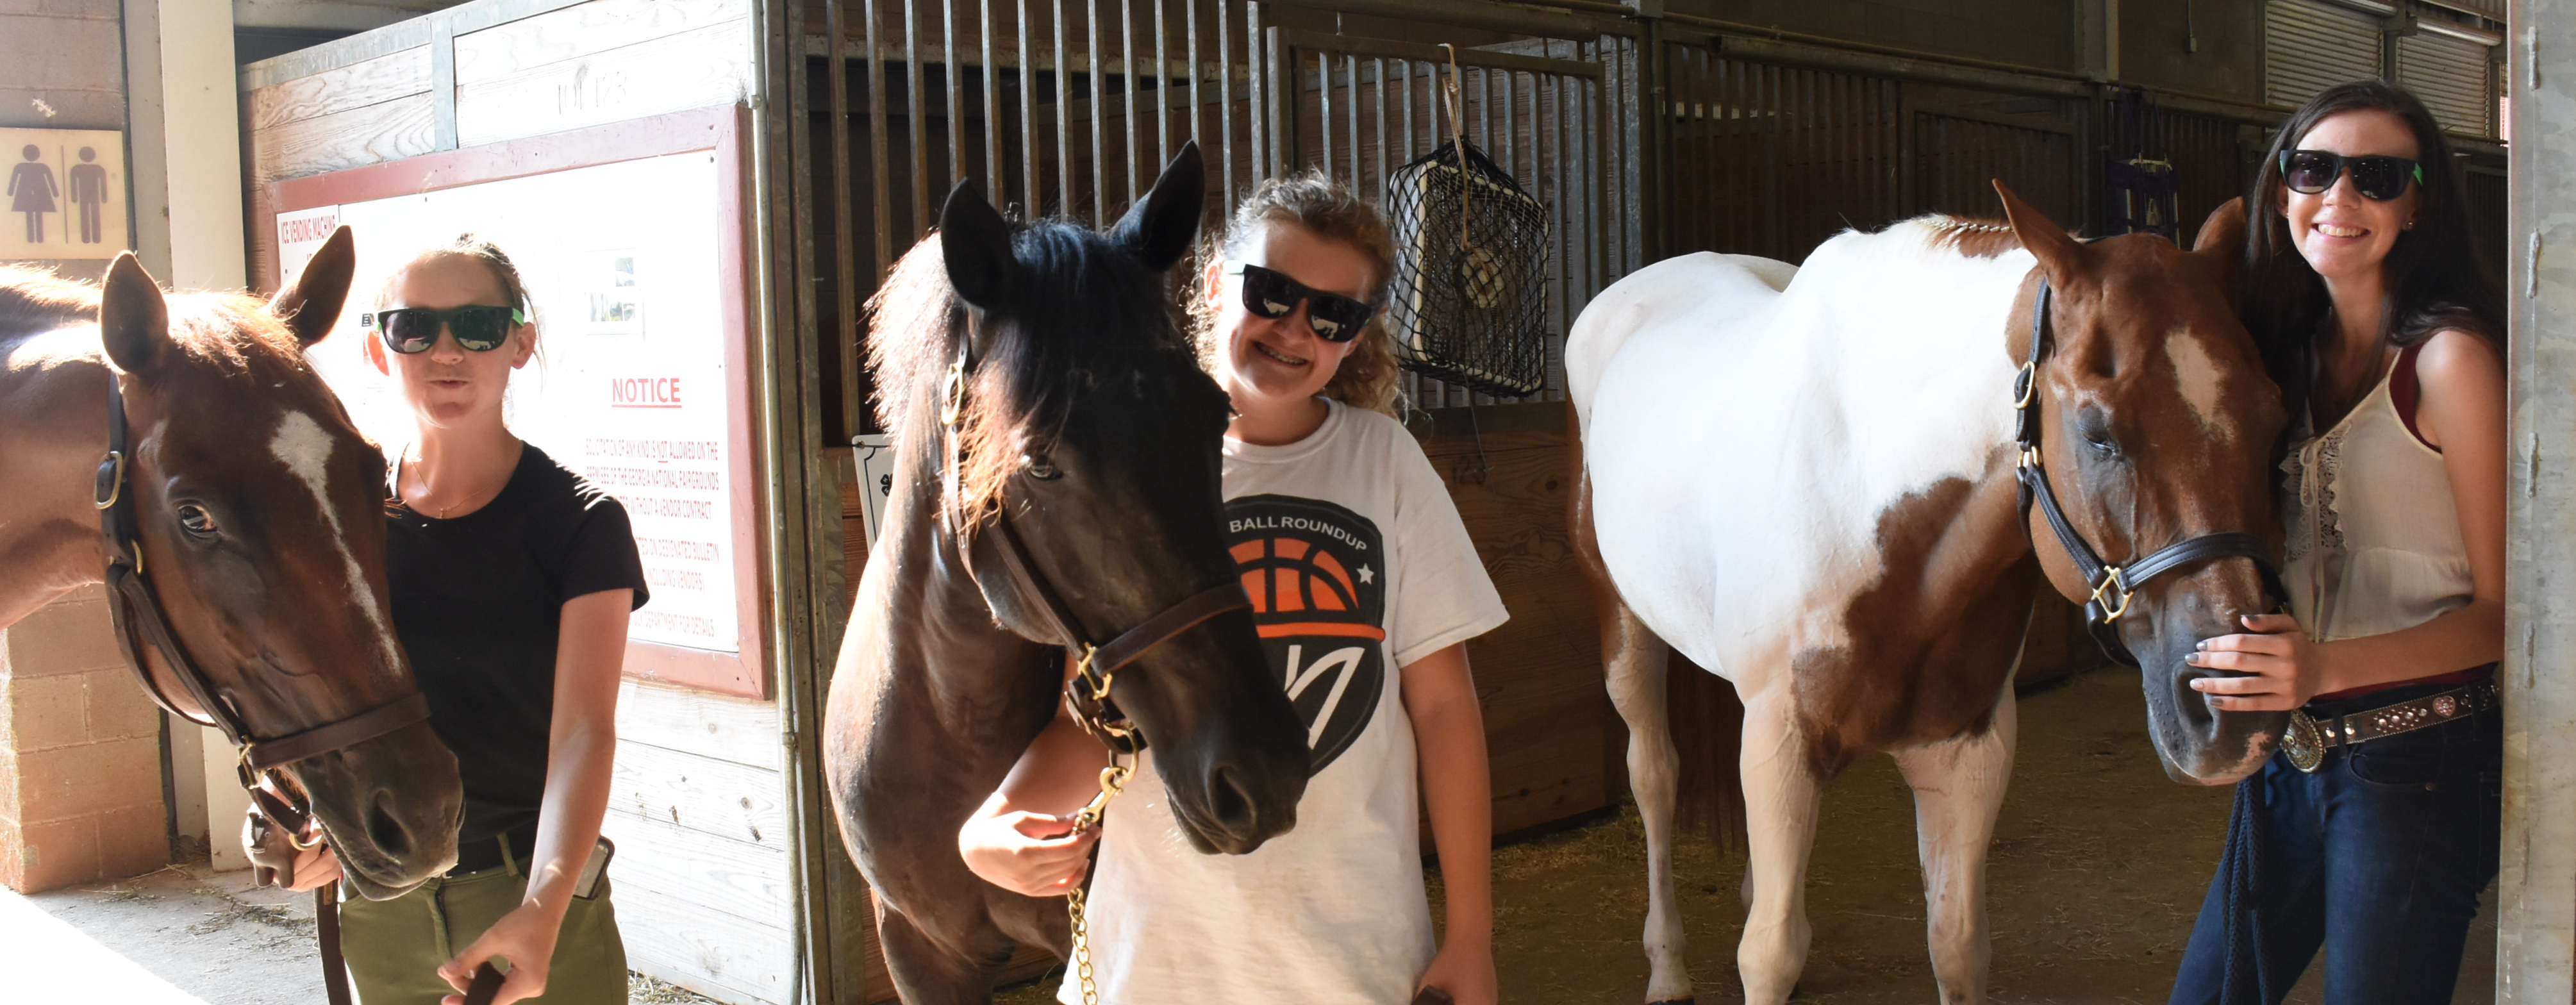 Georgia 4-H'ers had fun in the trick horse contest with winners (from left) Cate Stalling and Adler Rae Owens, both of Sumter County and Emily Coggins of Oconee County.